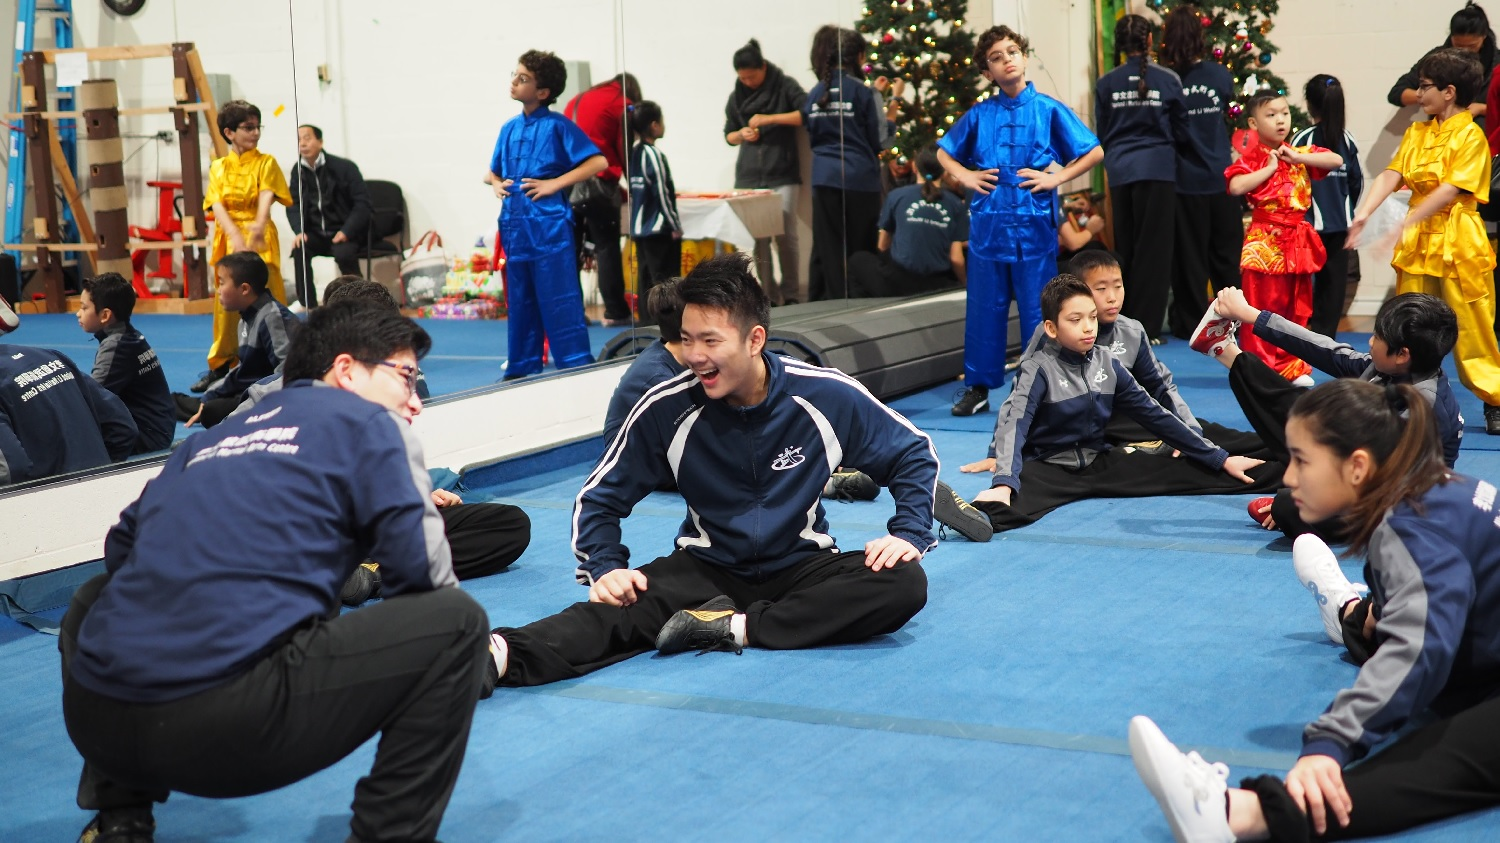 wayland-li-wushu-canada-ontario-toronto-classes-taolu-holiday-party-2017-13.jpg